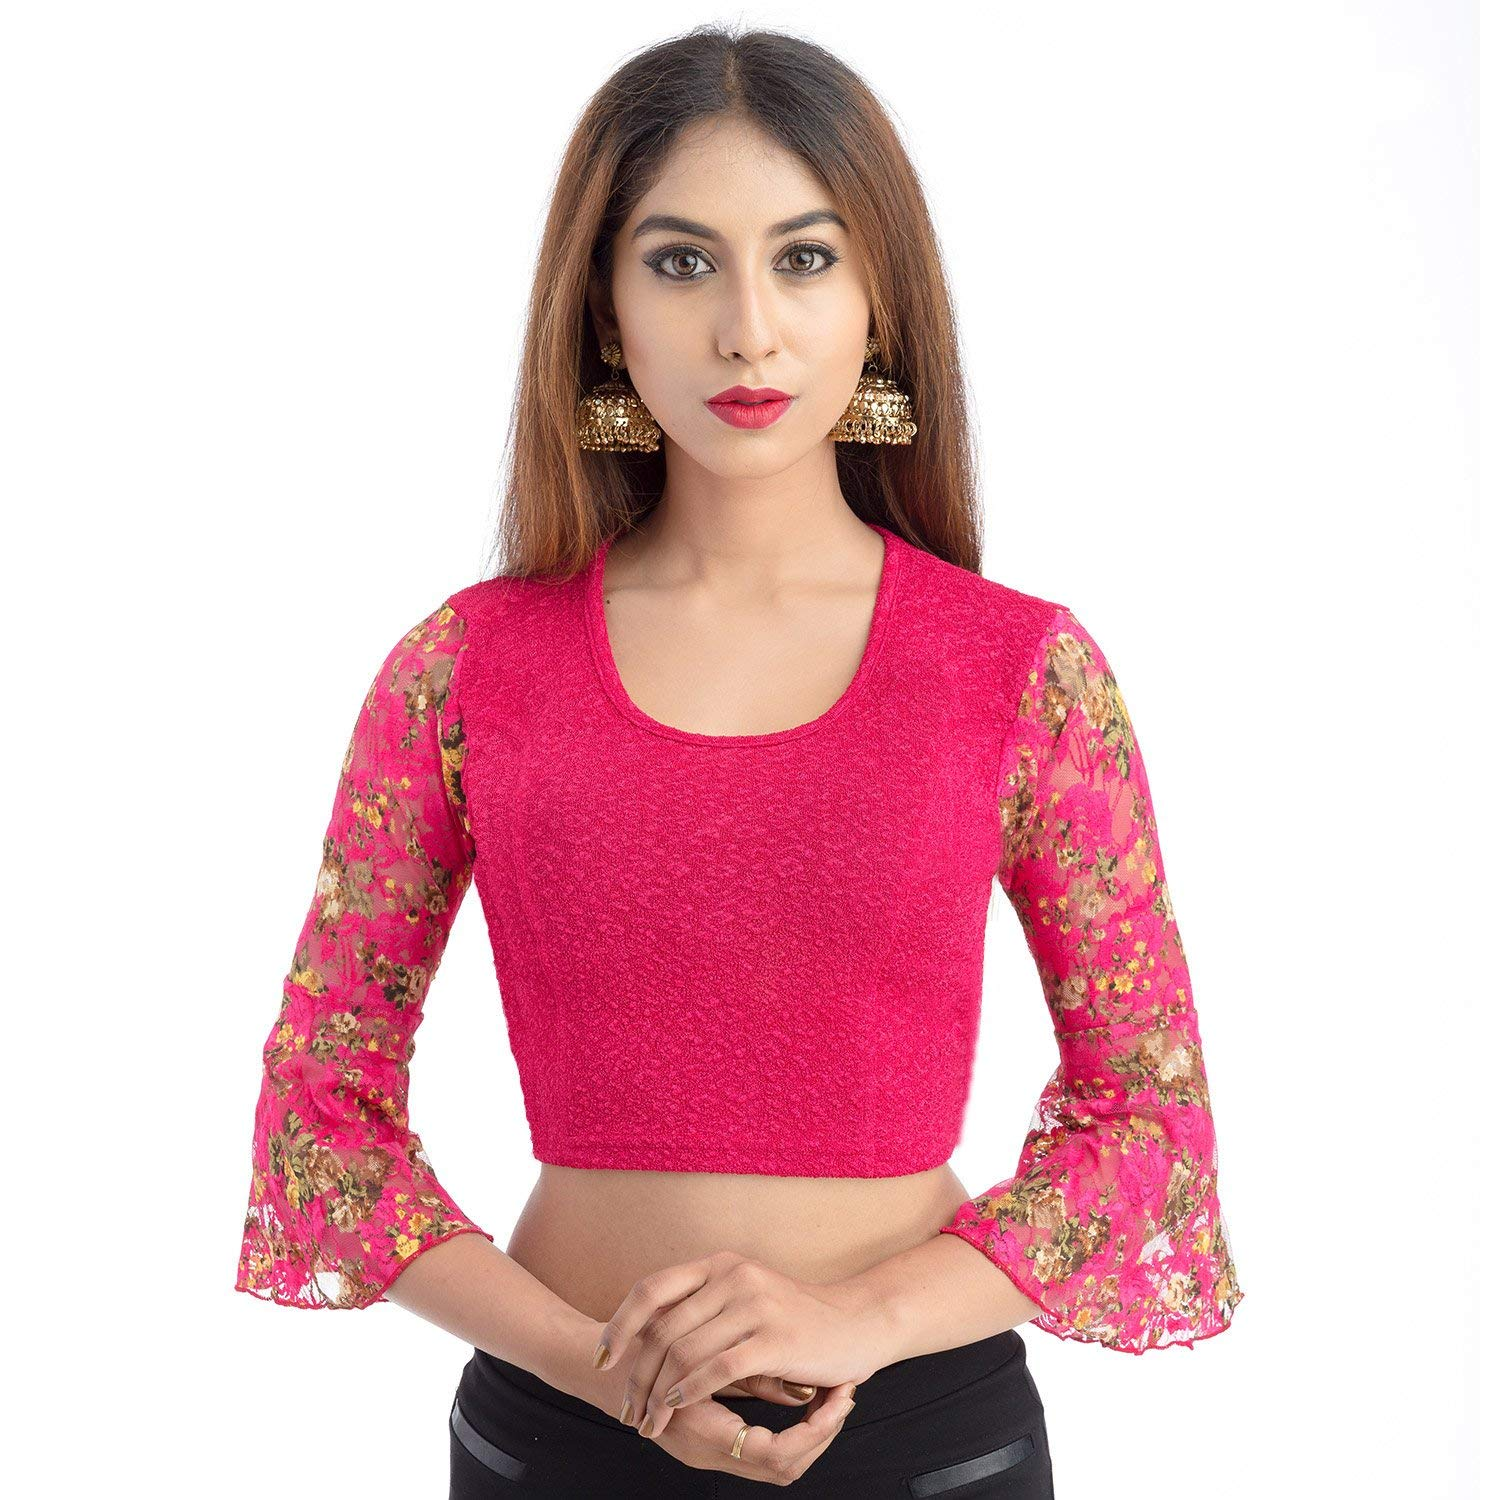 Lionize Women's Lycra 3/4th Sleeve Scoopneck Stretchable Crop Top/Blouse